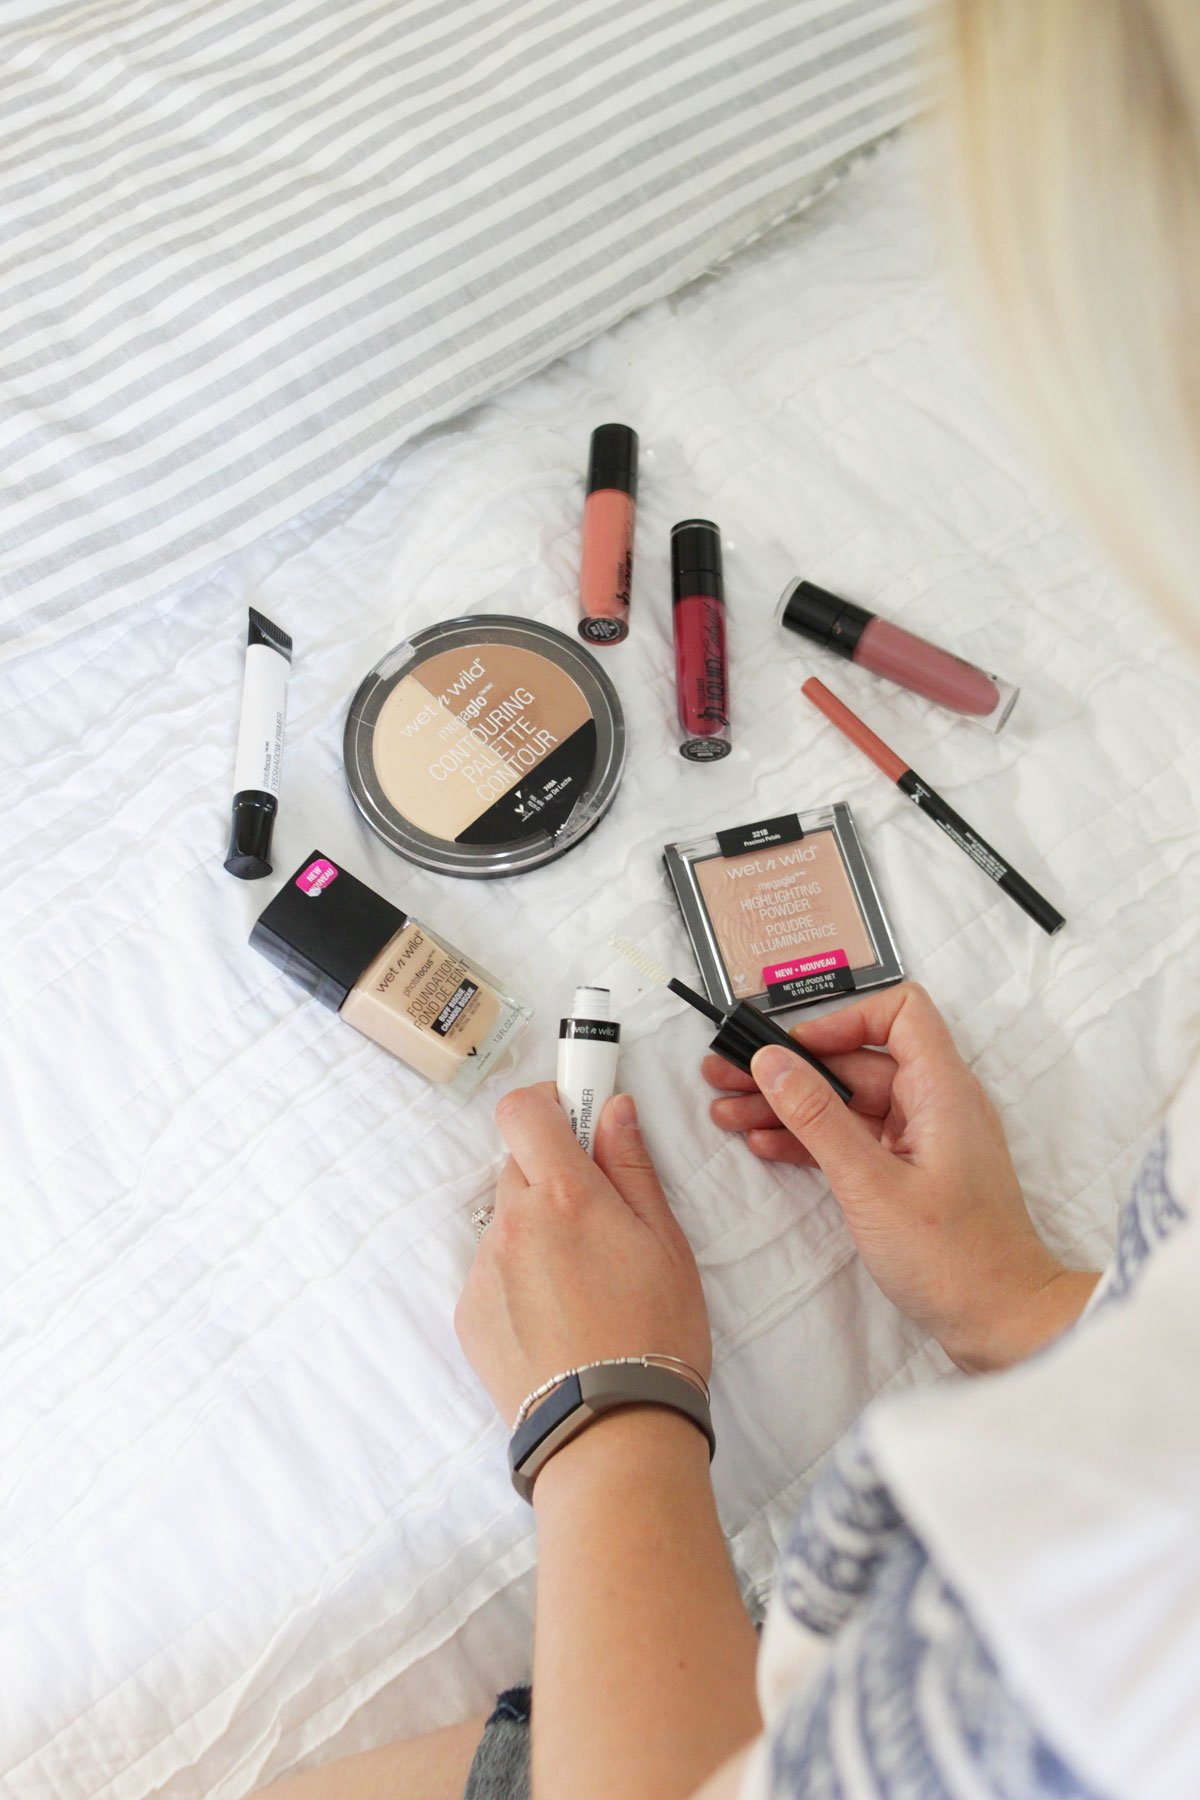 Makeup must-haves from Wet n Wild